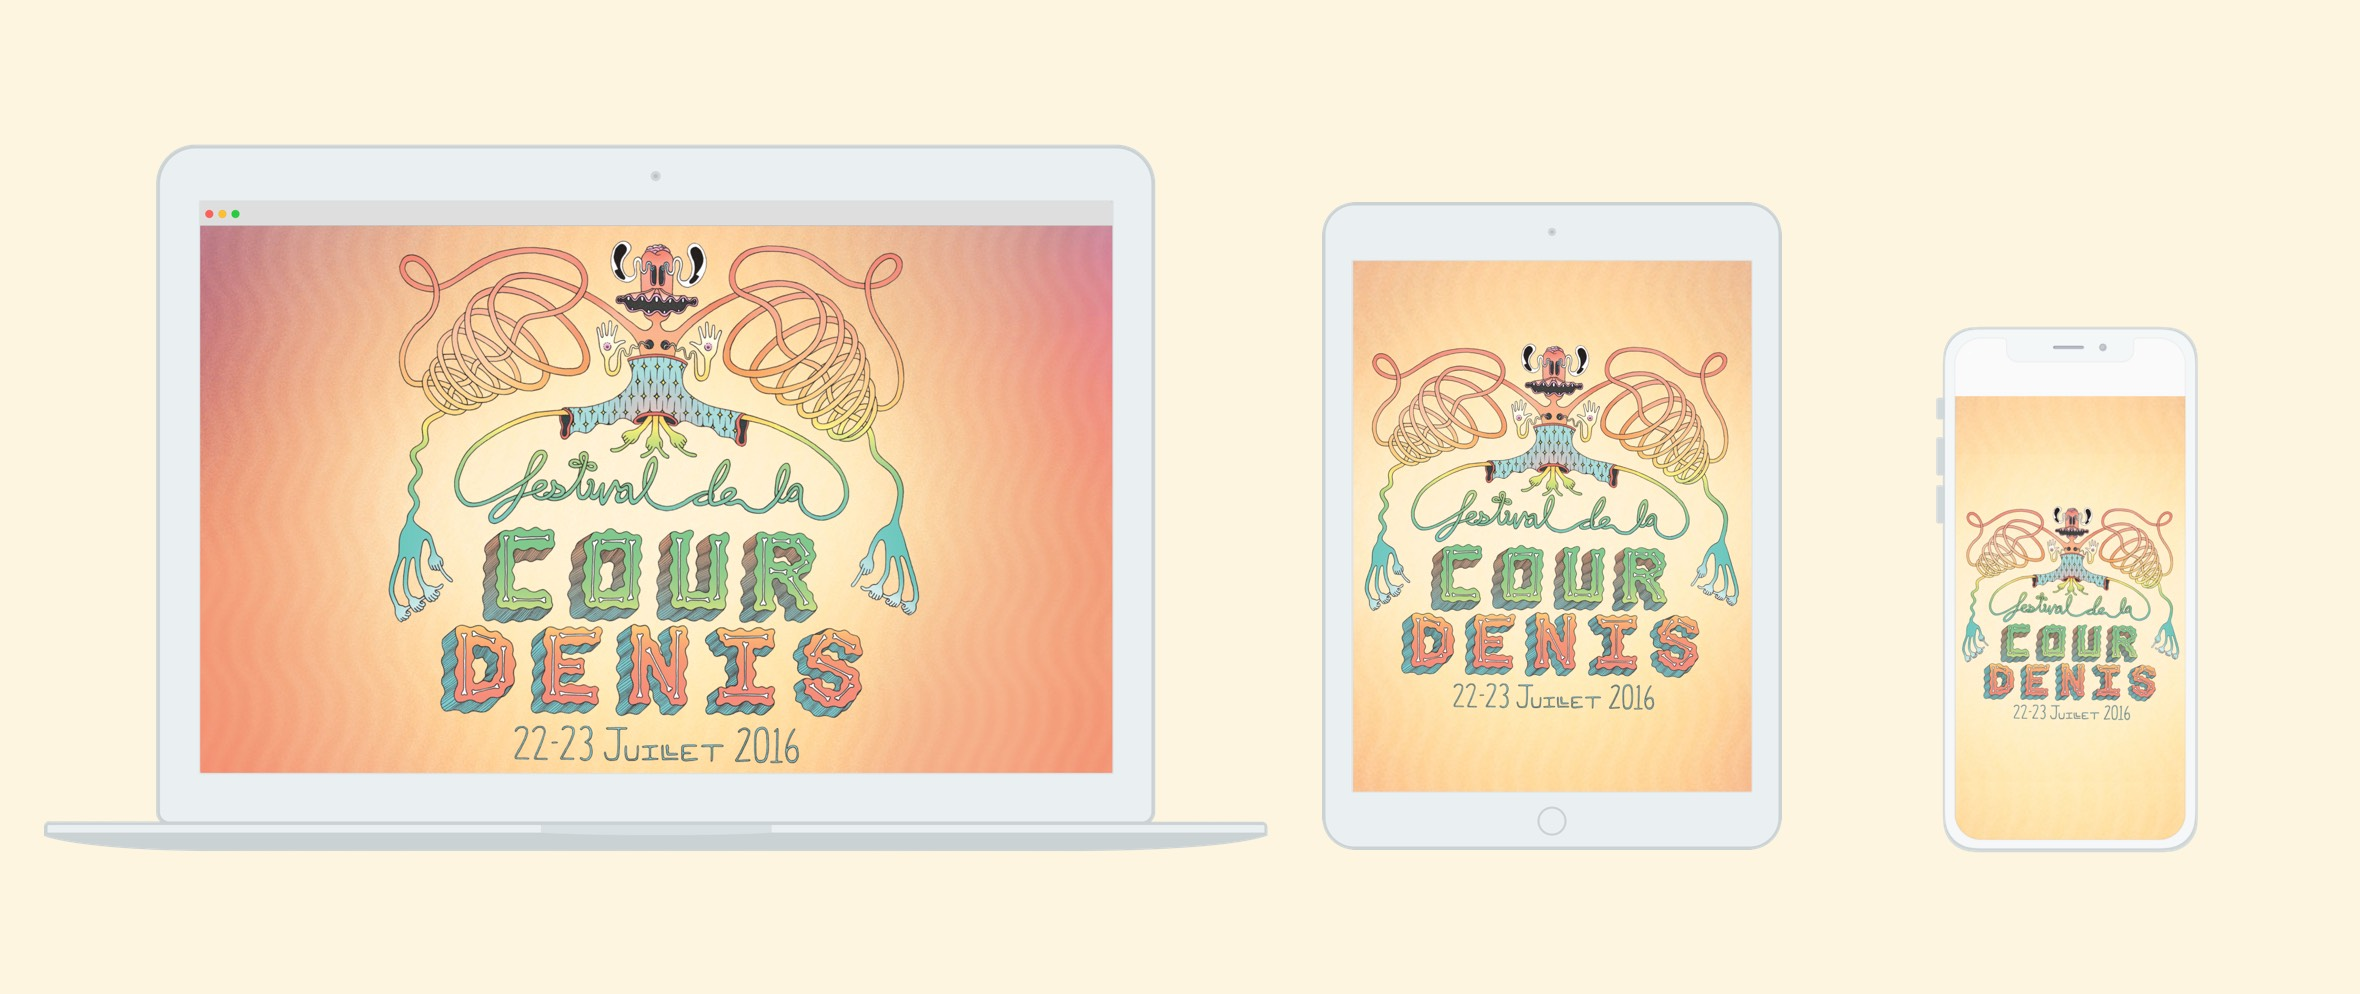 Laptop, tablet and smartphone displaying 2016 Festival de la Cour Denis website with illustration